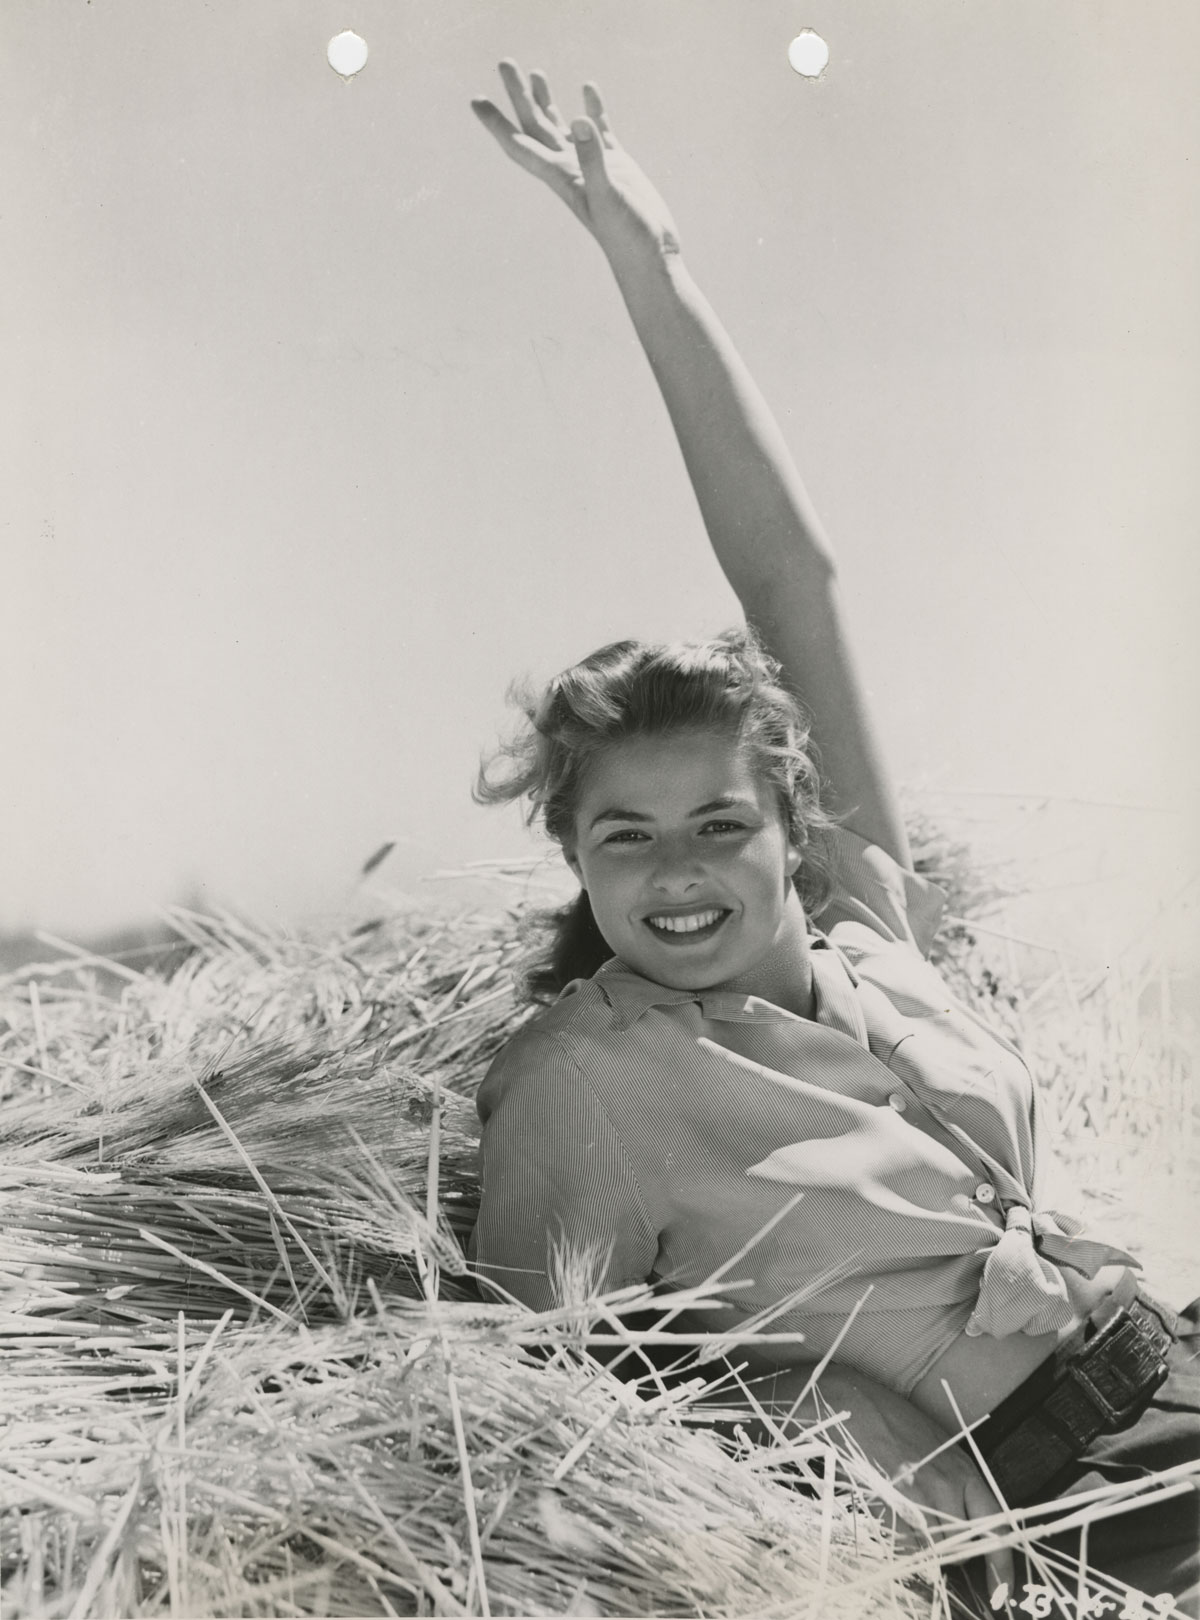 Ingrid Bergman in a publicity image for Intermezzo. From the David O. Selznick collection at the Harry Ransom Center.